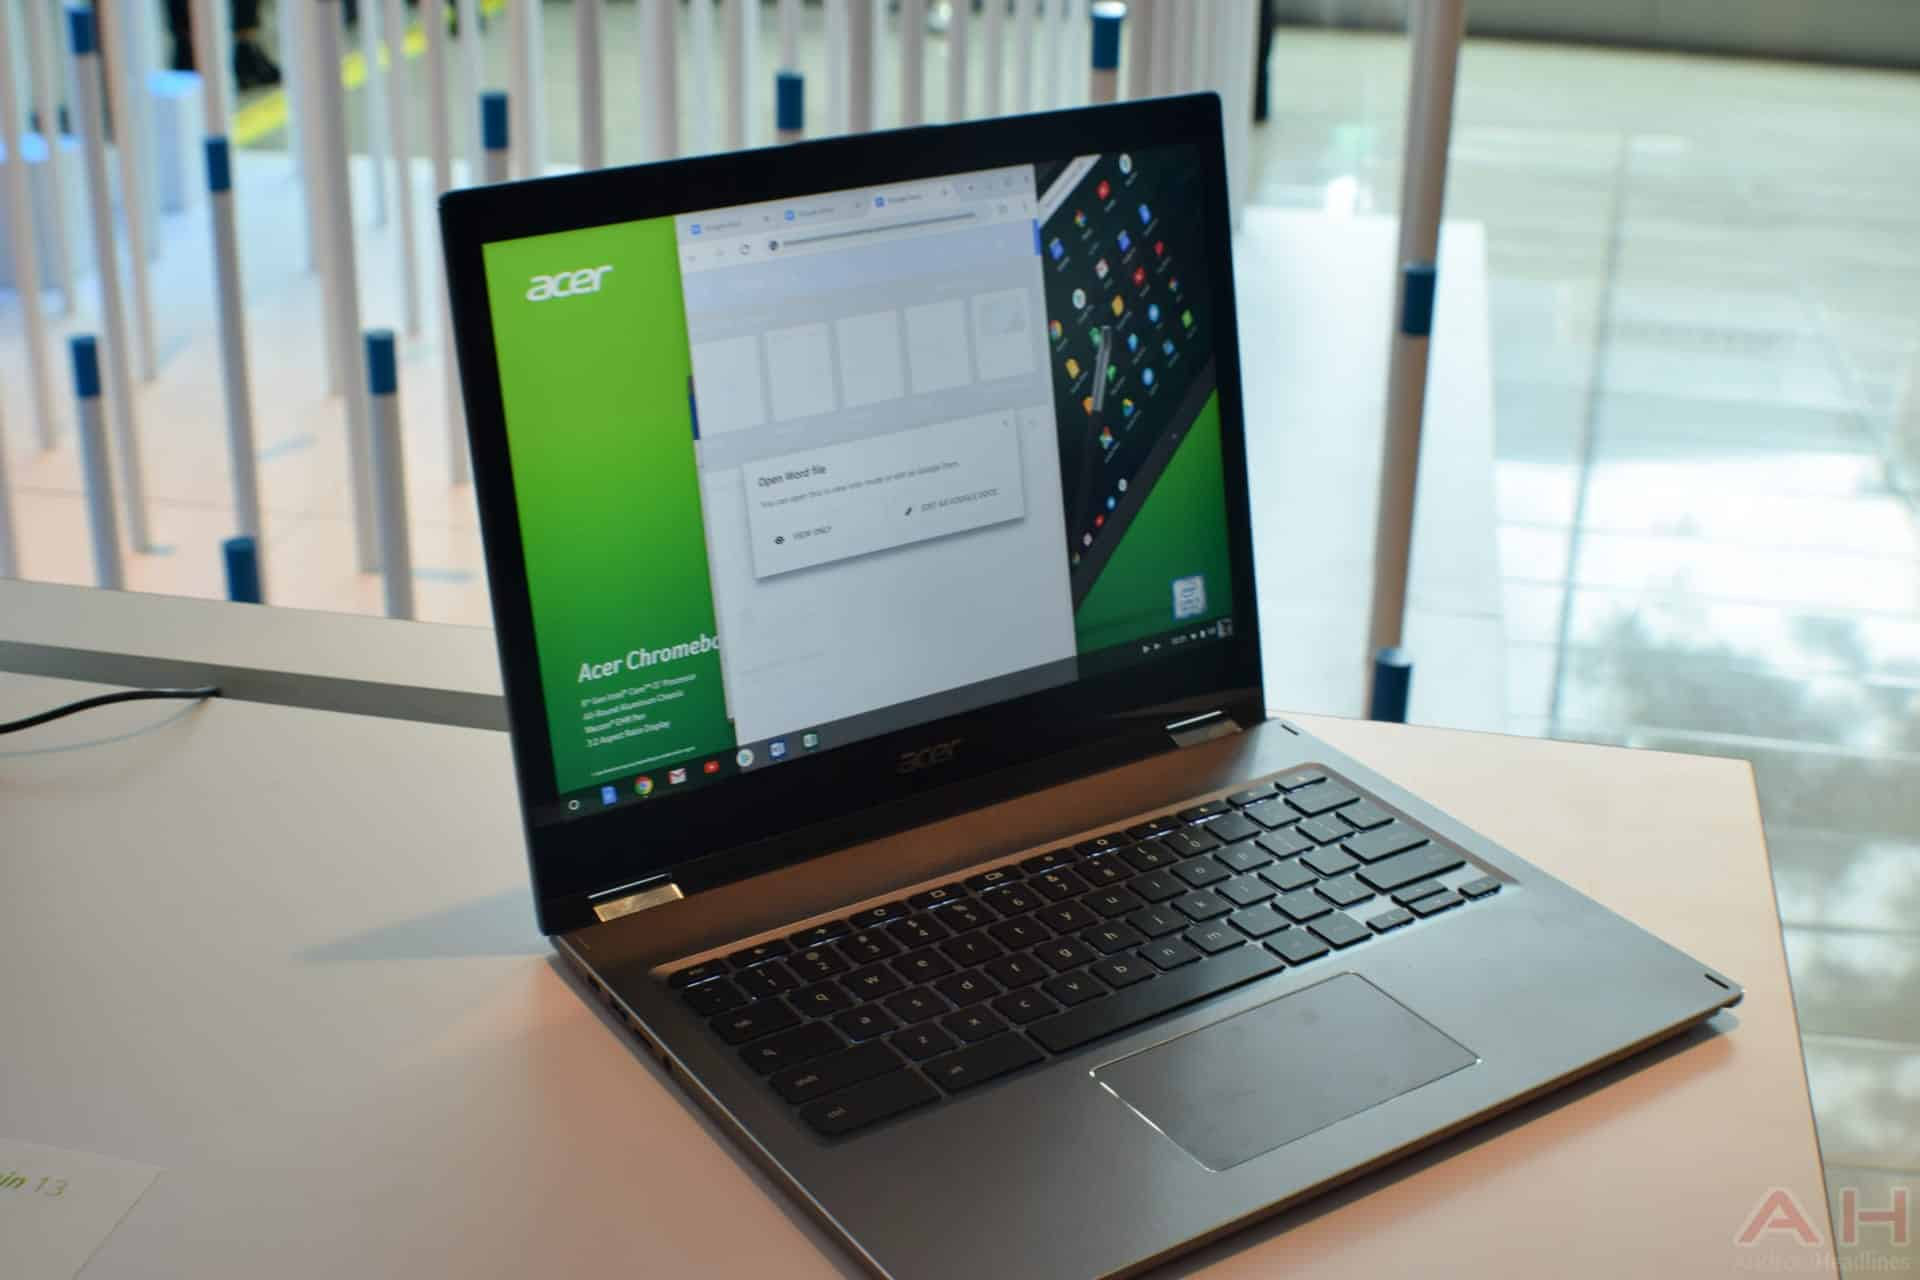 Acer Chromebook Spin 13 AM AH 3